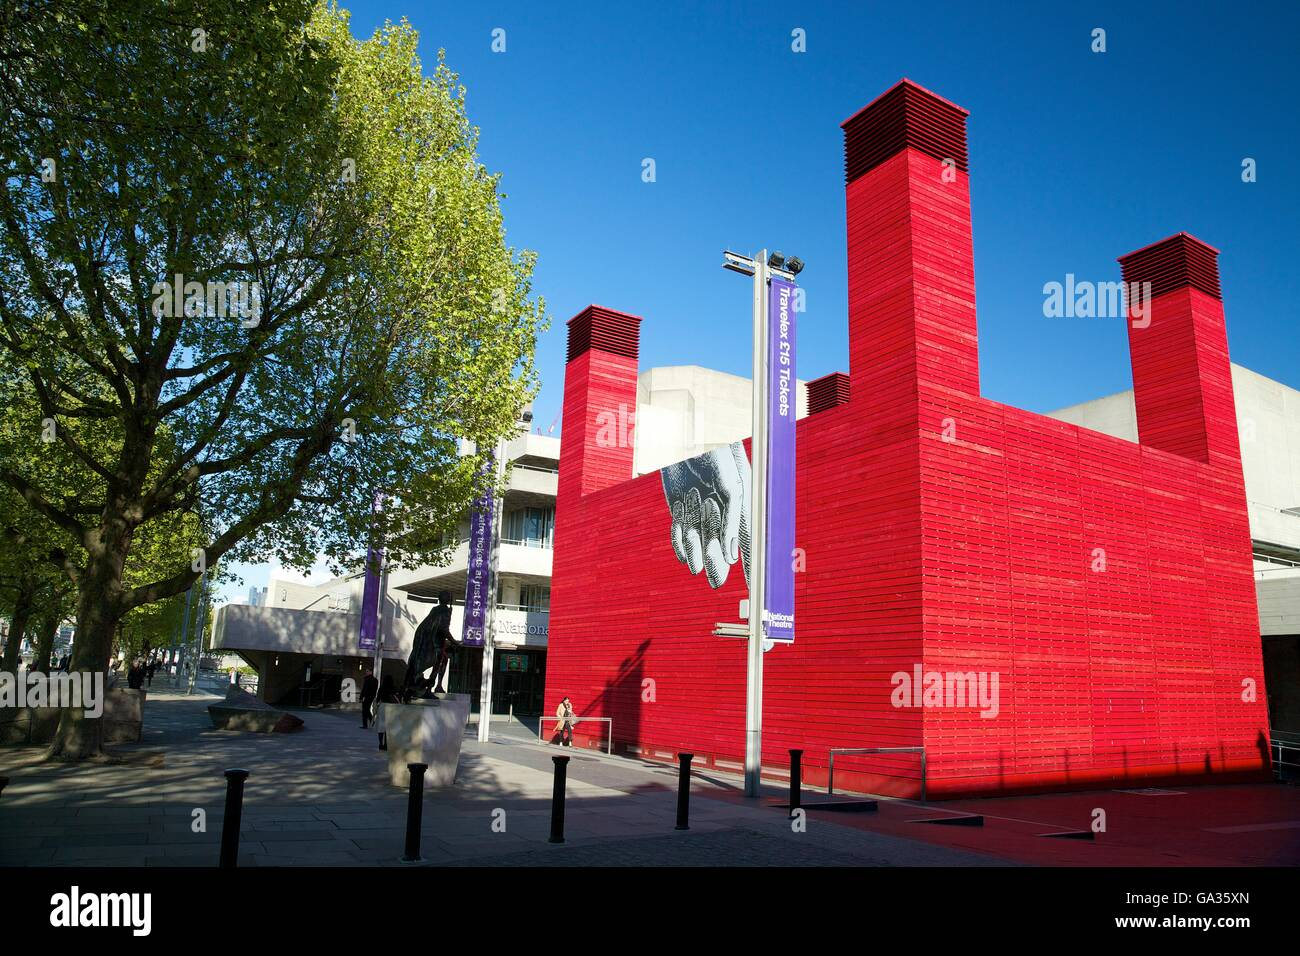 The Shed, National Theatre, South Bank, London, England, UK, GB, Europe - Stock Image